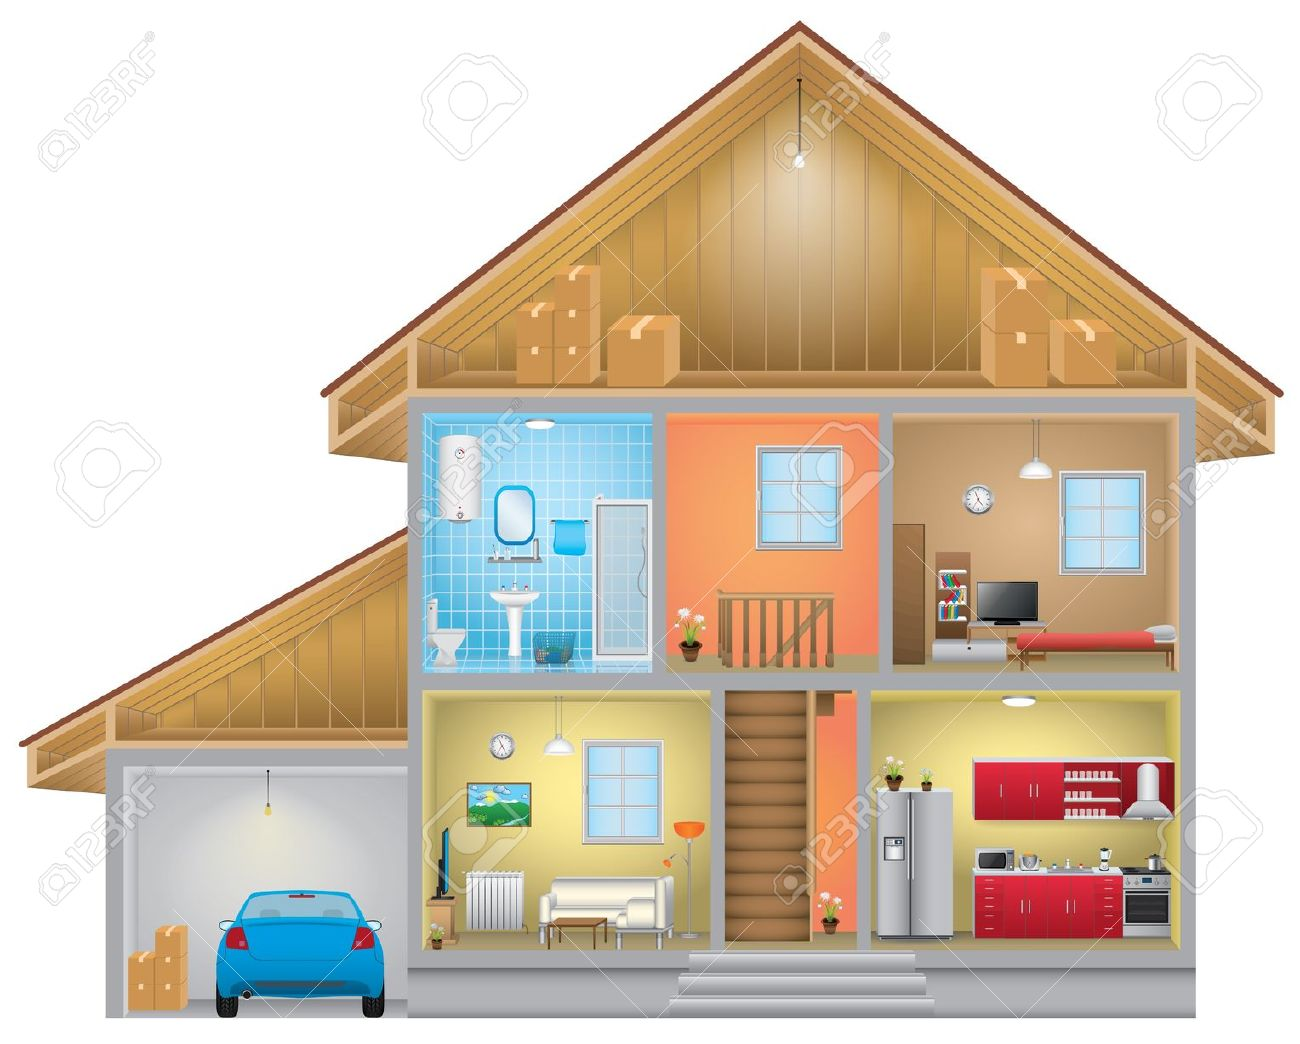 House interior clipart - Clipground